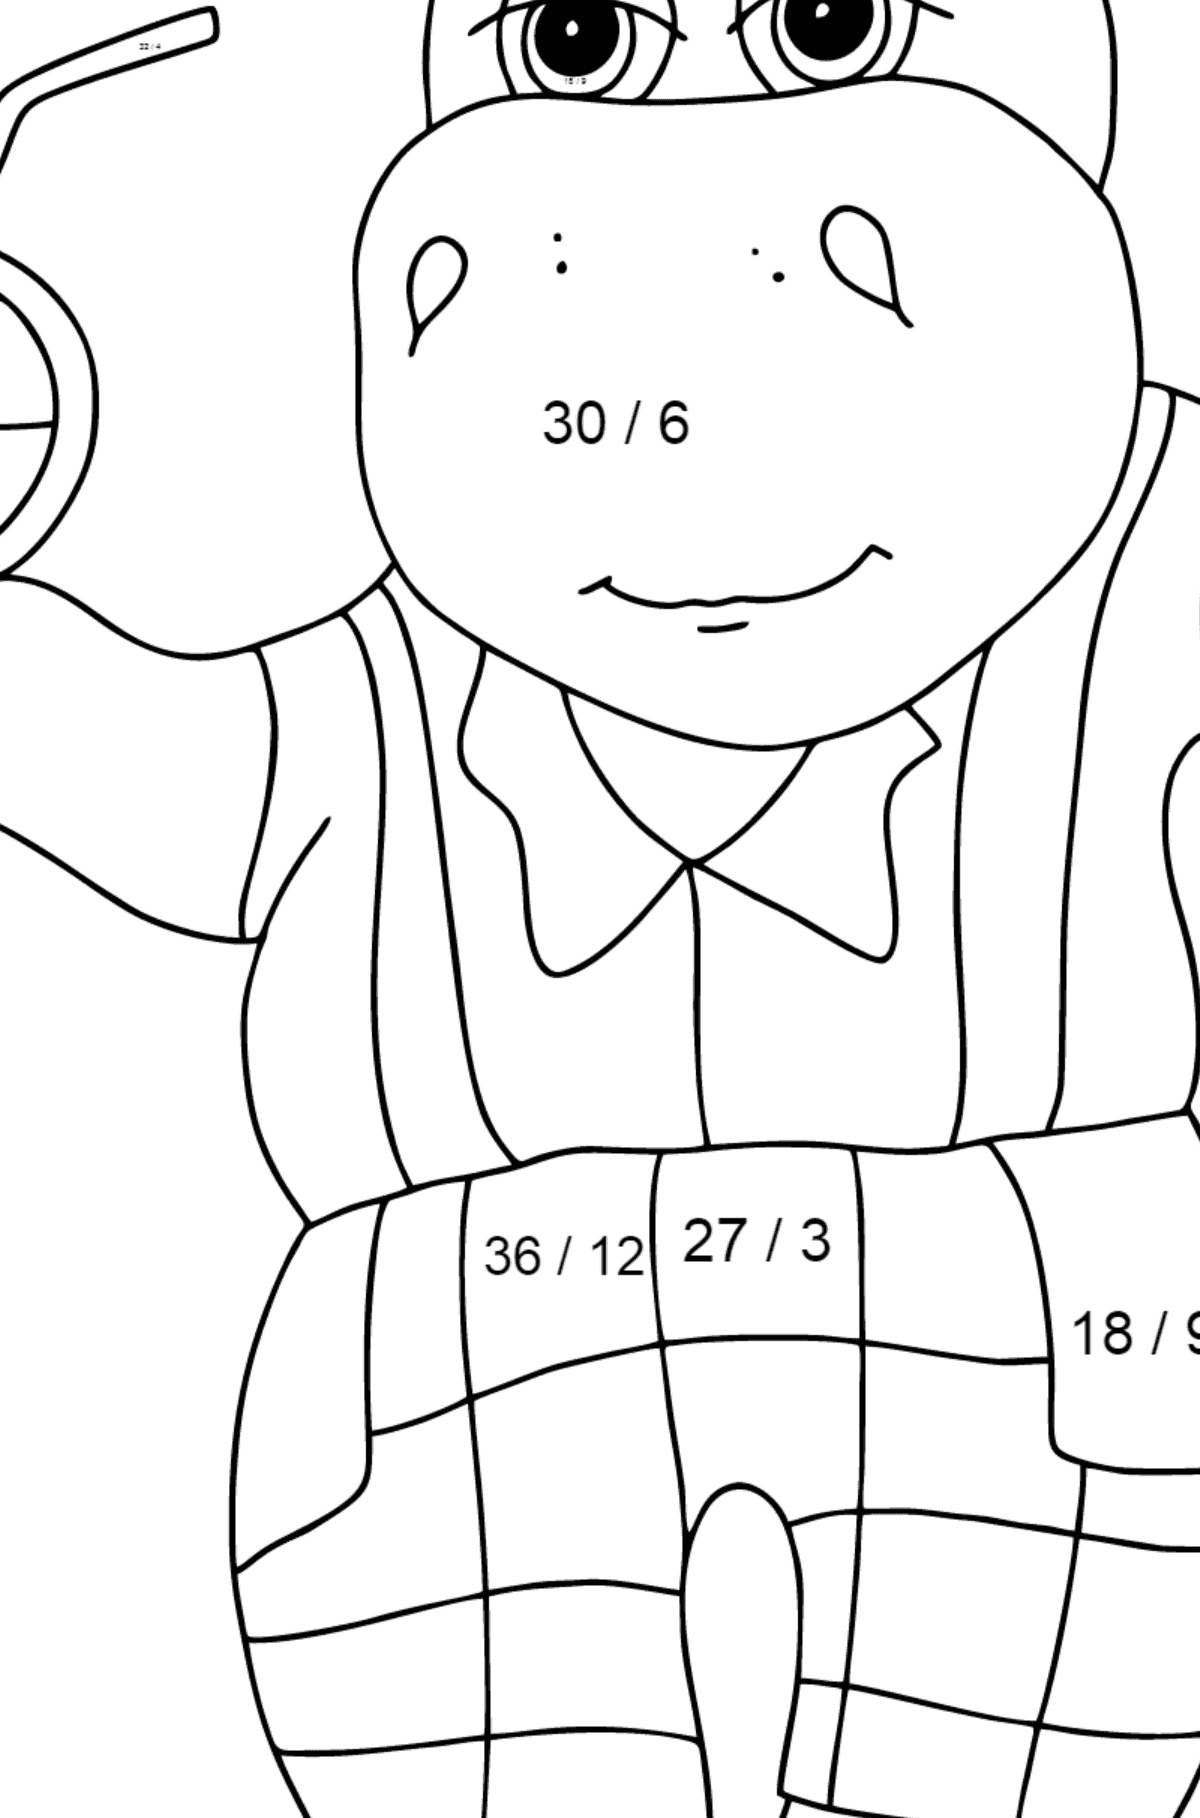 Coloring Page - A Hippo on a Beach with Juice for Children  - Color by Number Division